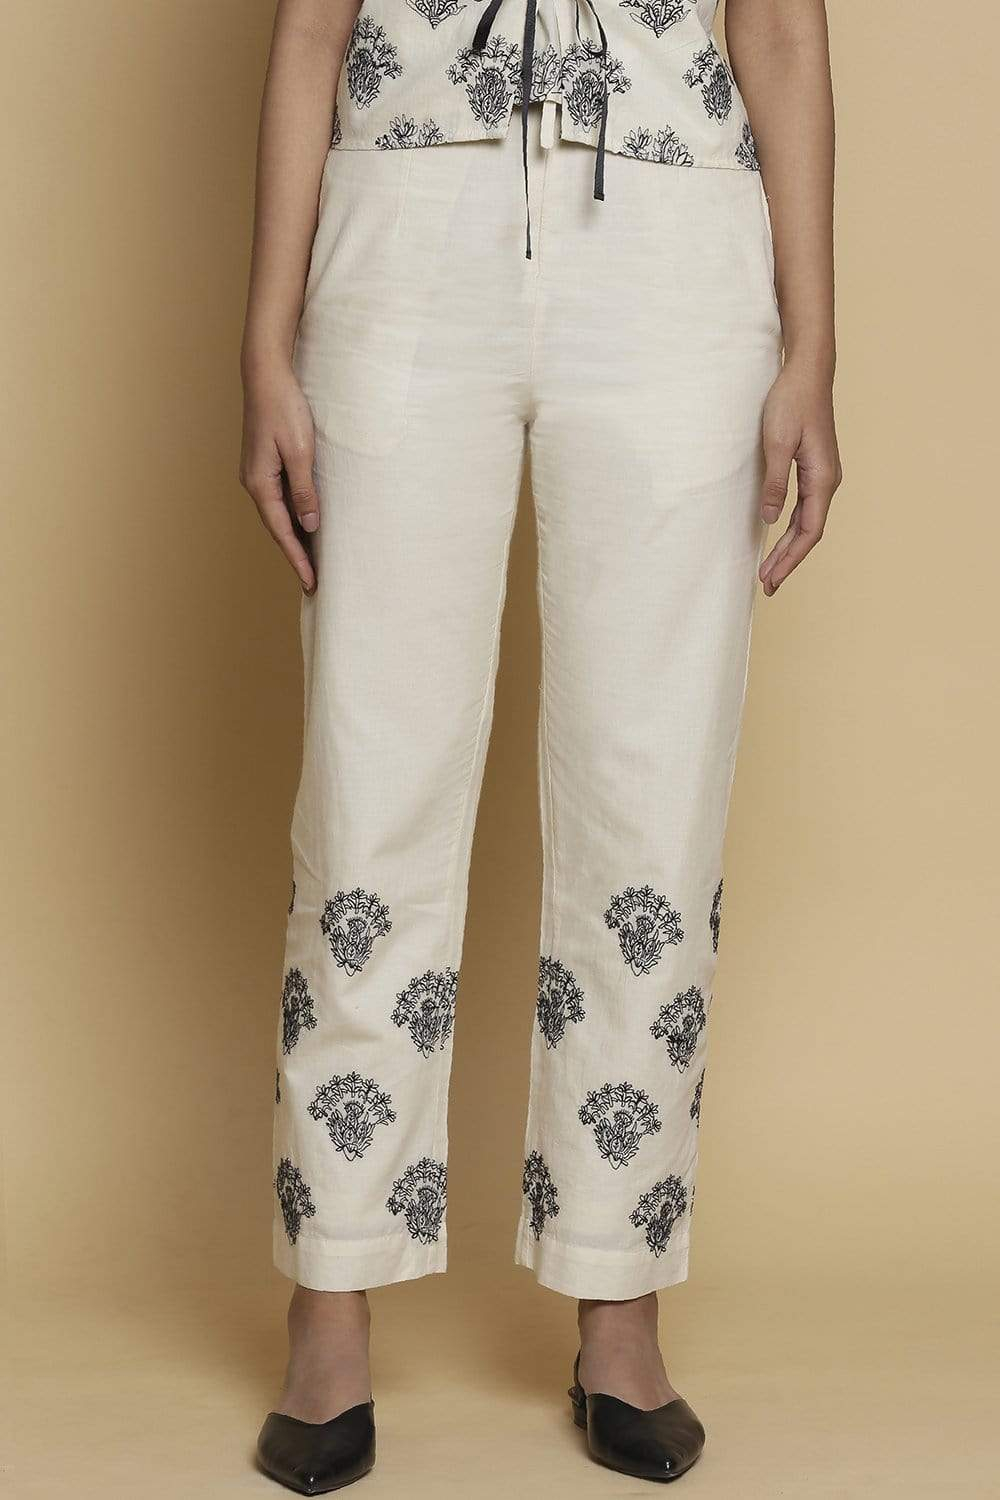 Abraham & Thakore Bottoms Straight pants with buta embroidery